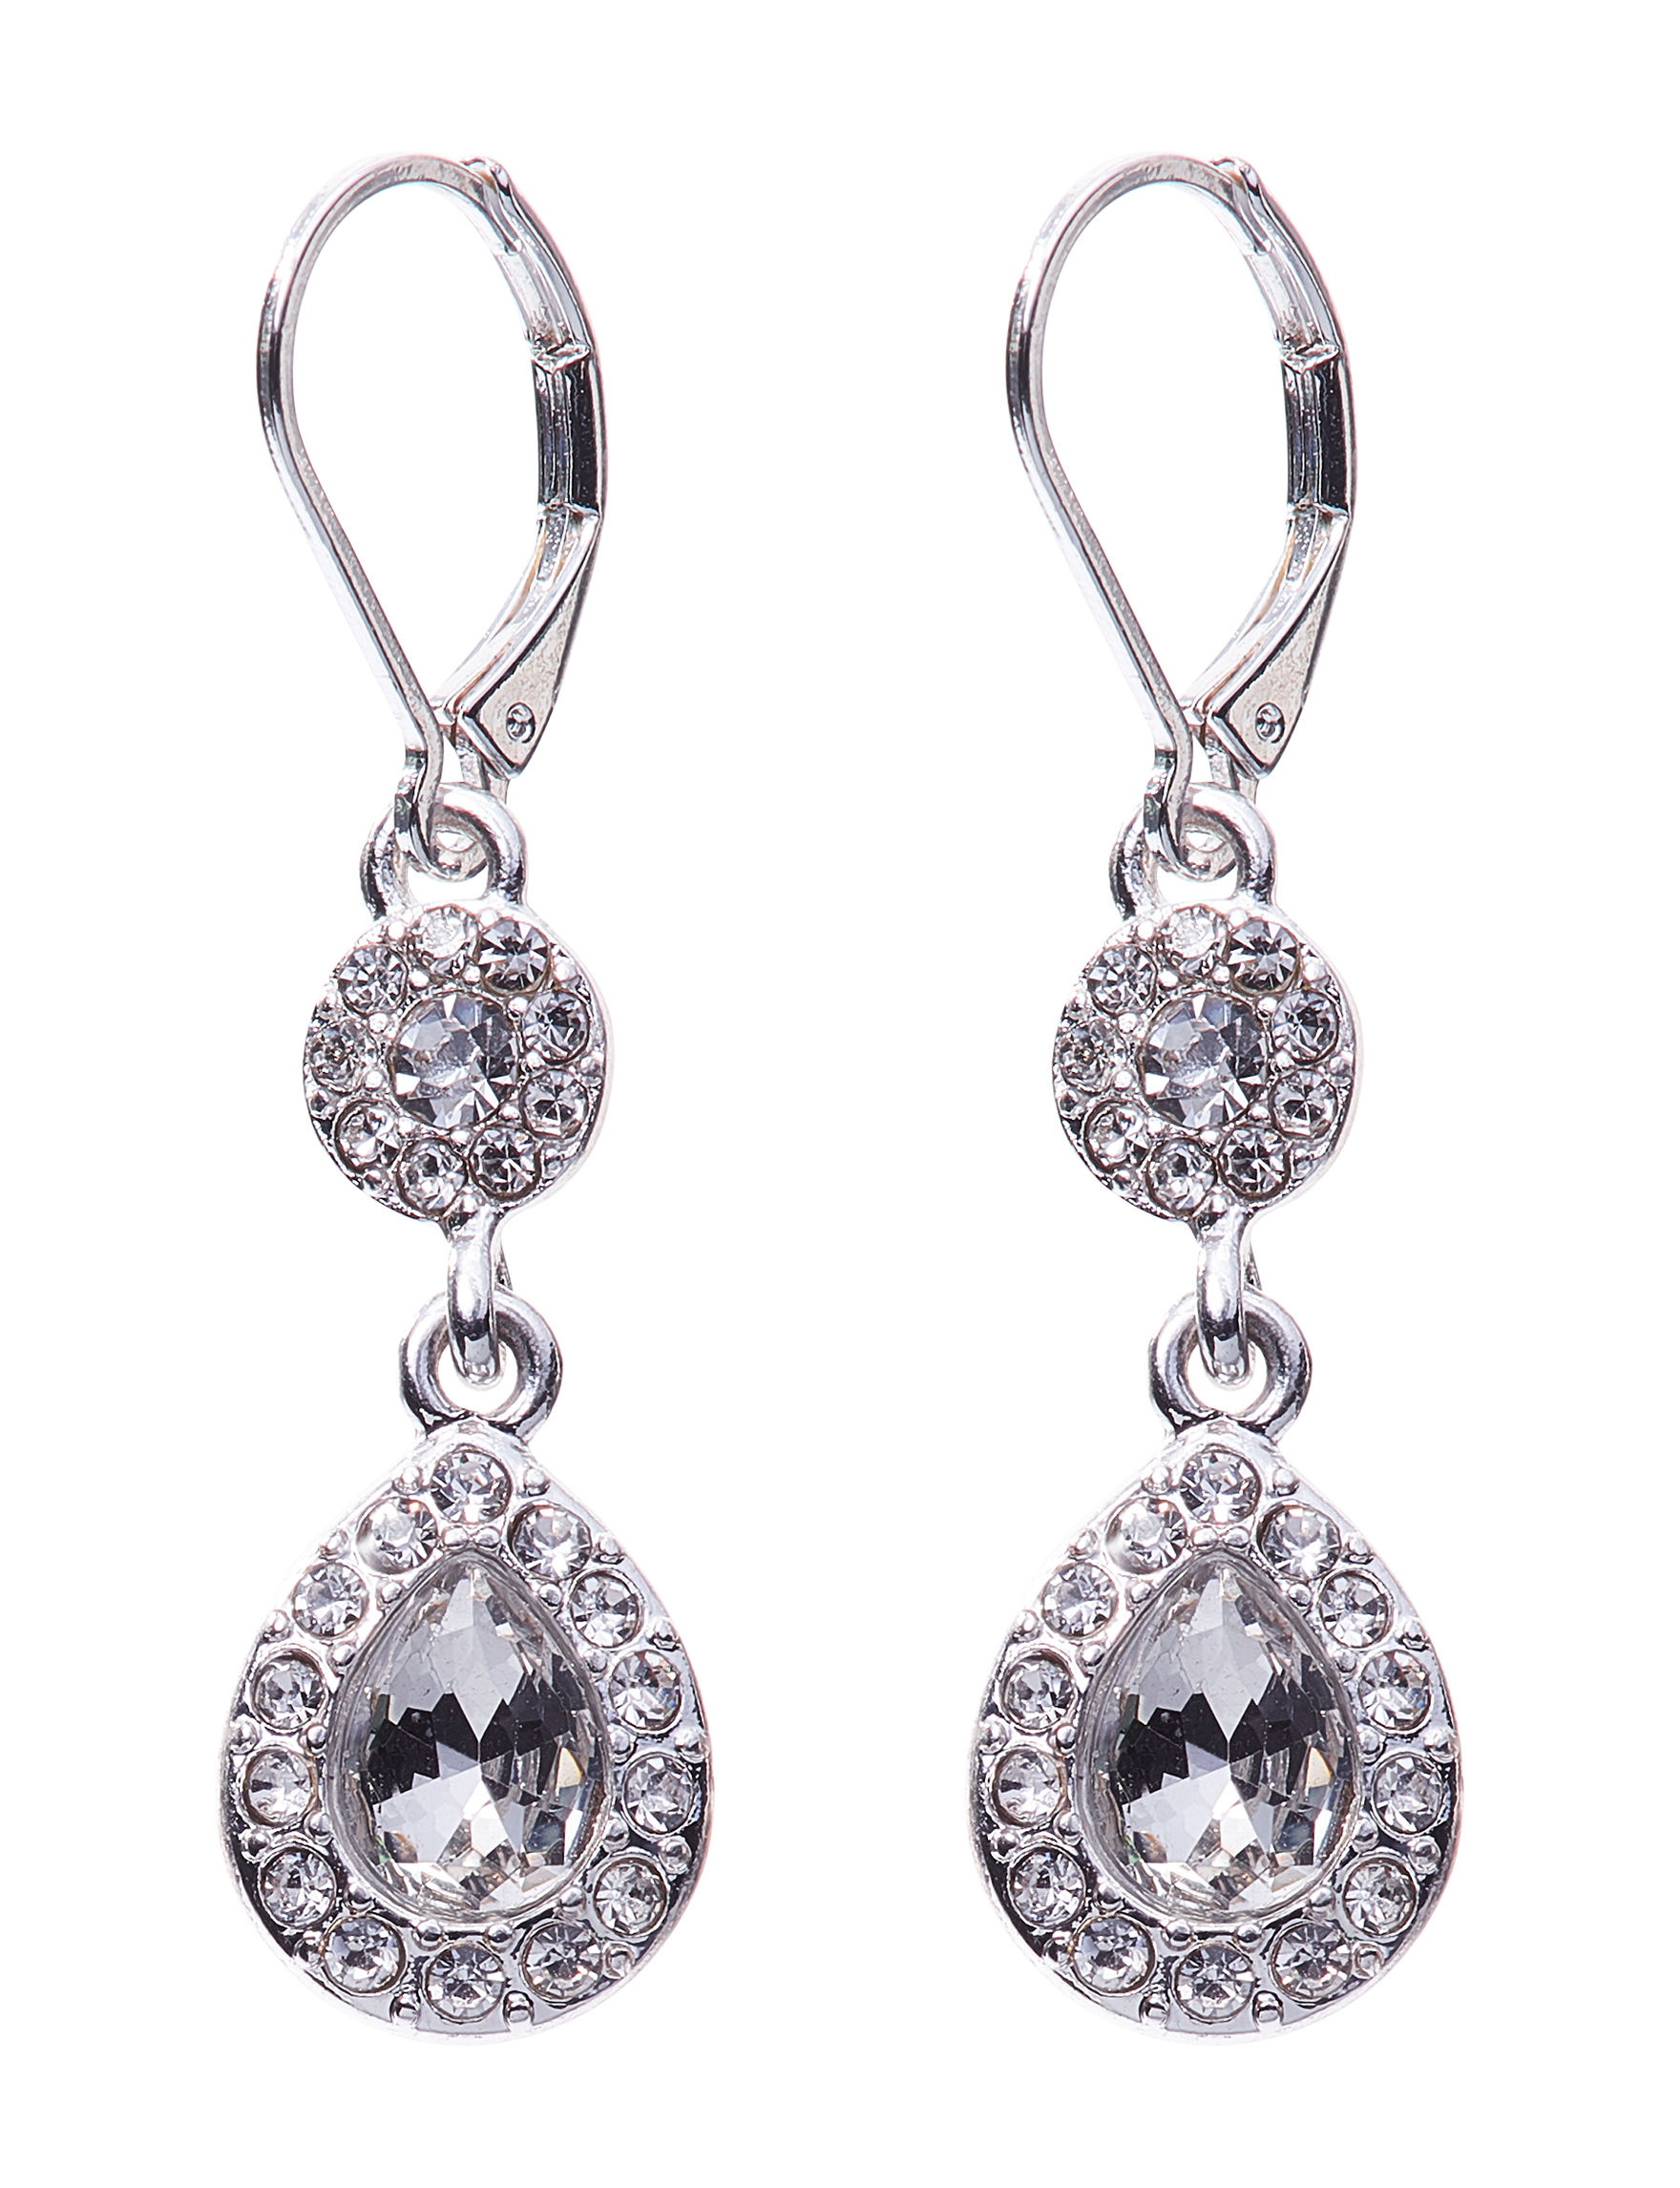 Napier Crystal Drops Earrings Fashion Jewelry